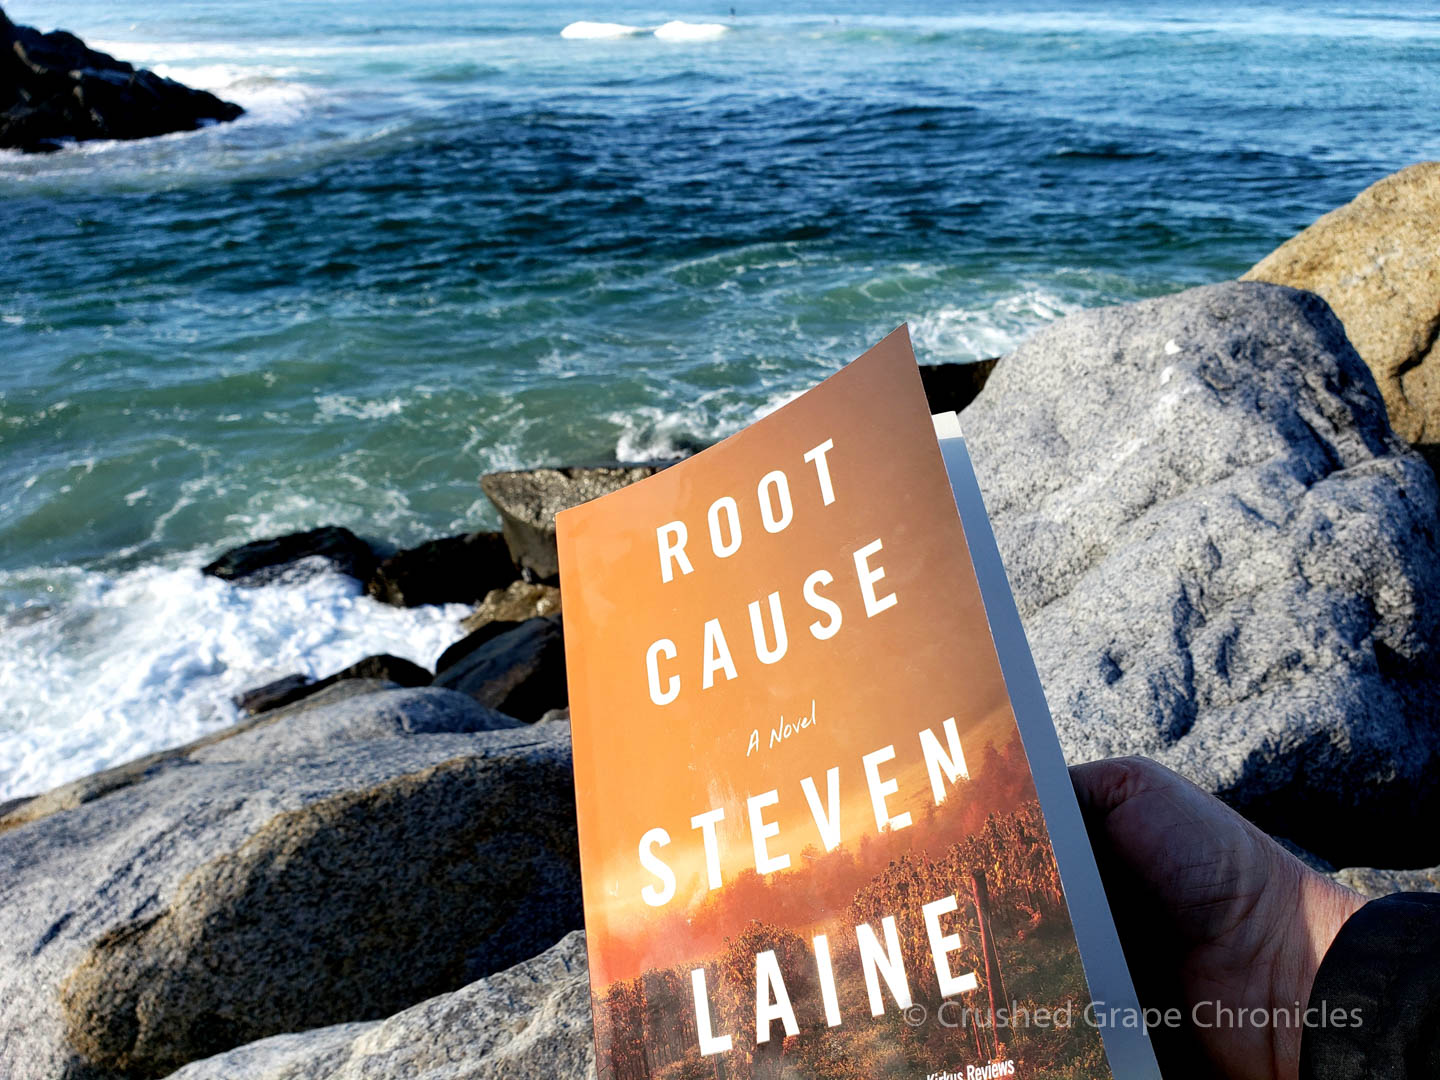 Root Cause by the Ocean in Carlsbad